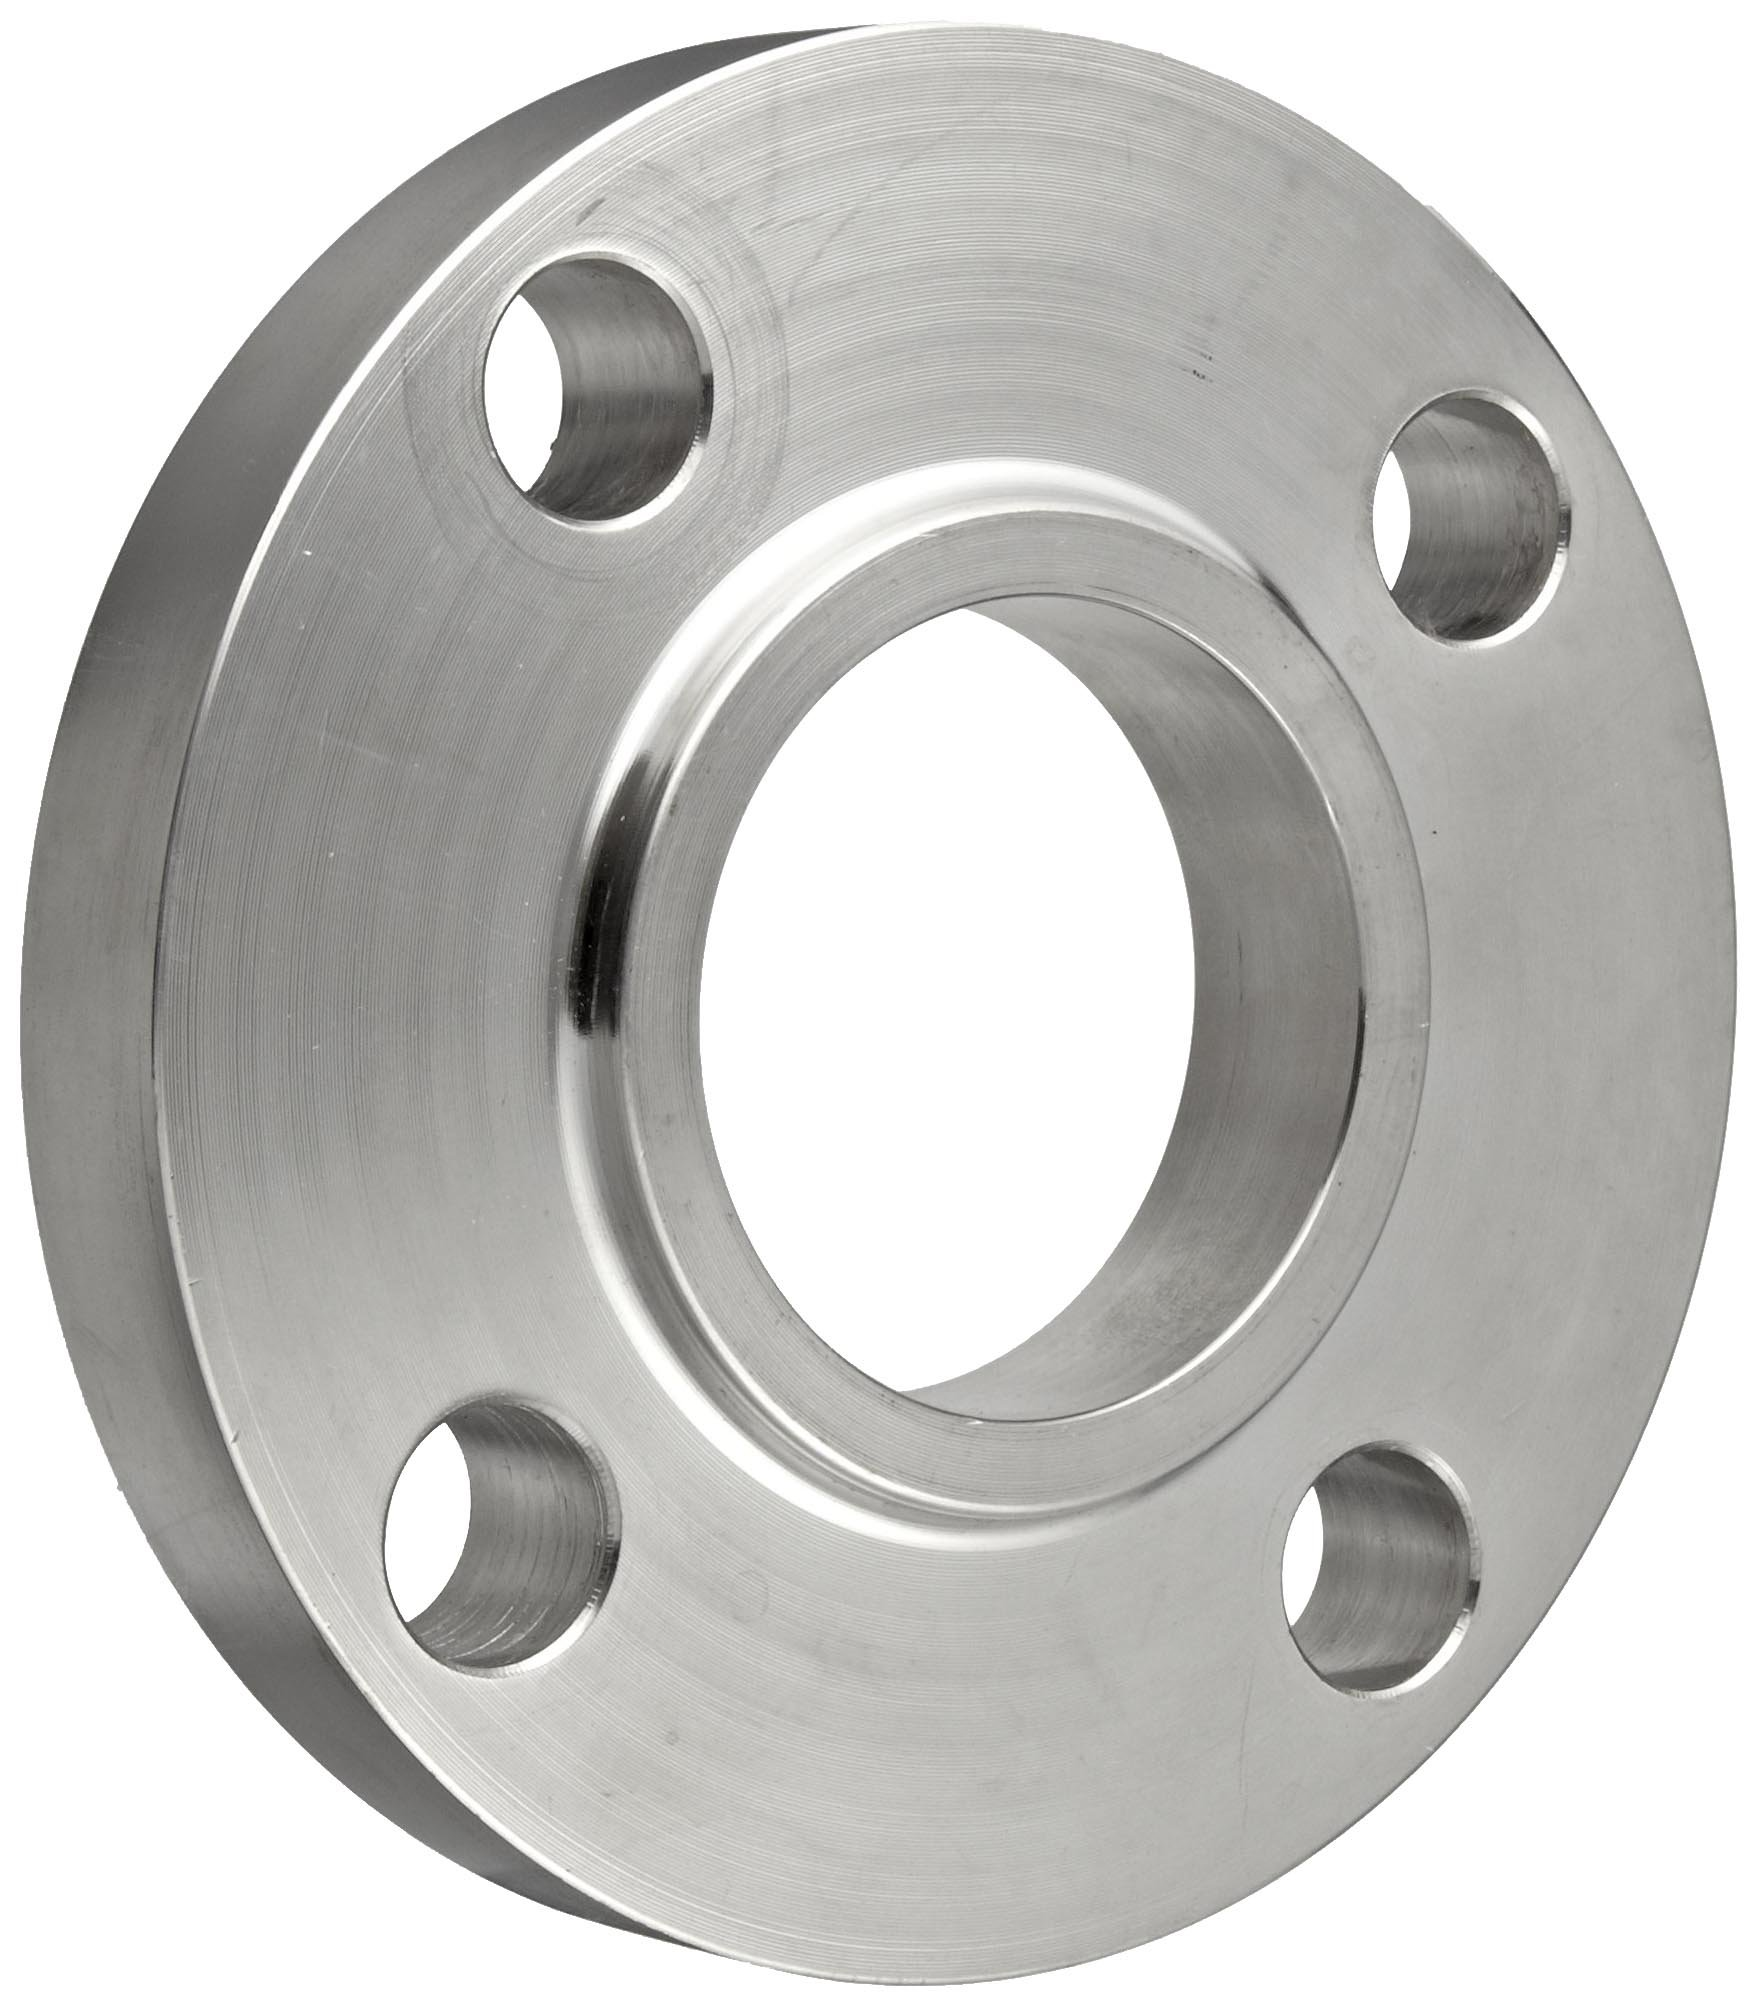 Lap joint flanges manufacturers piping material